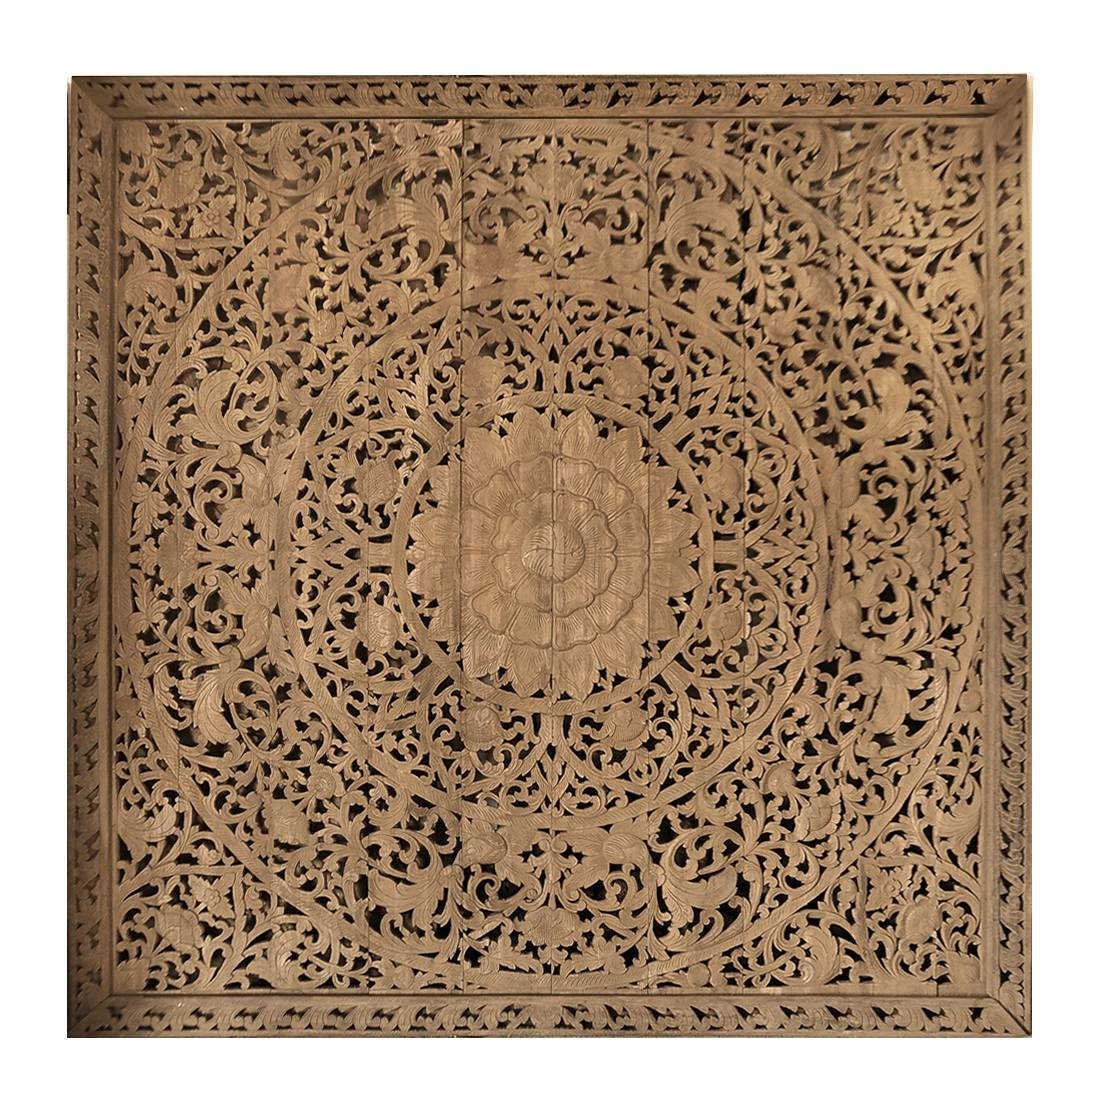 Large Grand Carved Wooden Wall Art Or Ceiling Panel – Siam Sawadee Within 2017 Wood Carved Wall Art Panels (View 5 of 25)